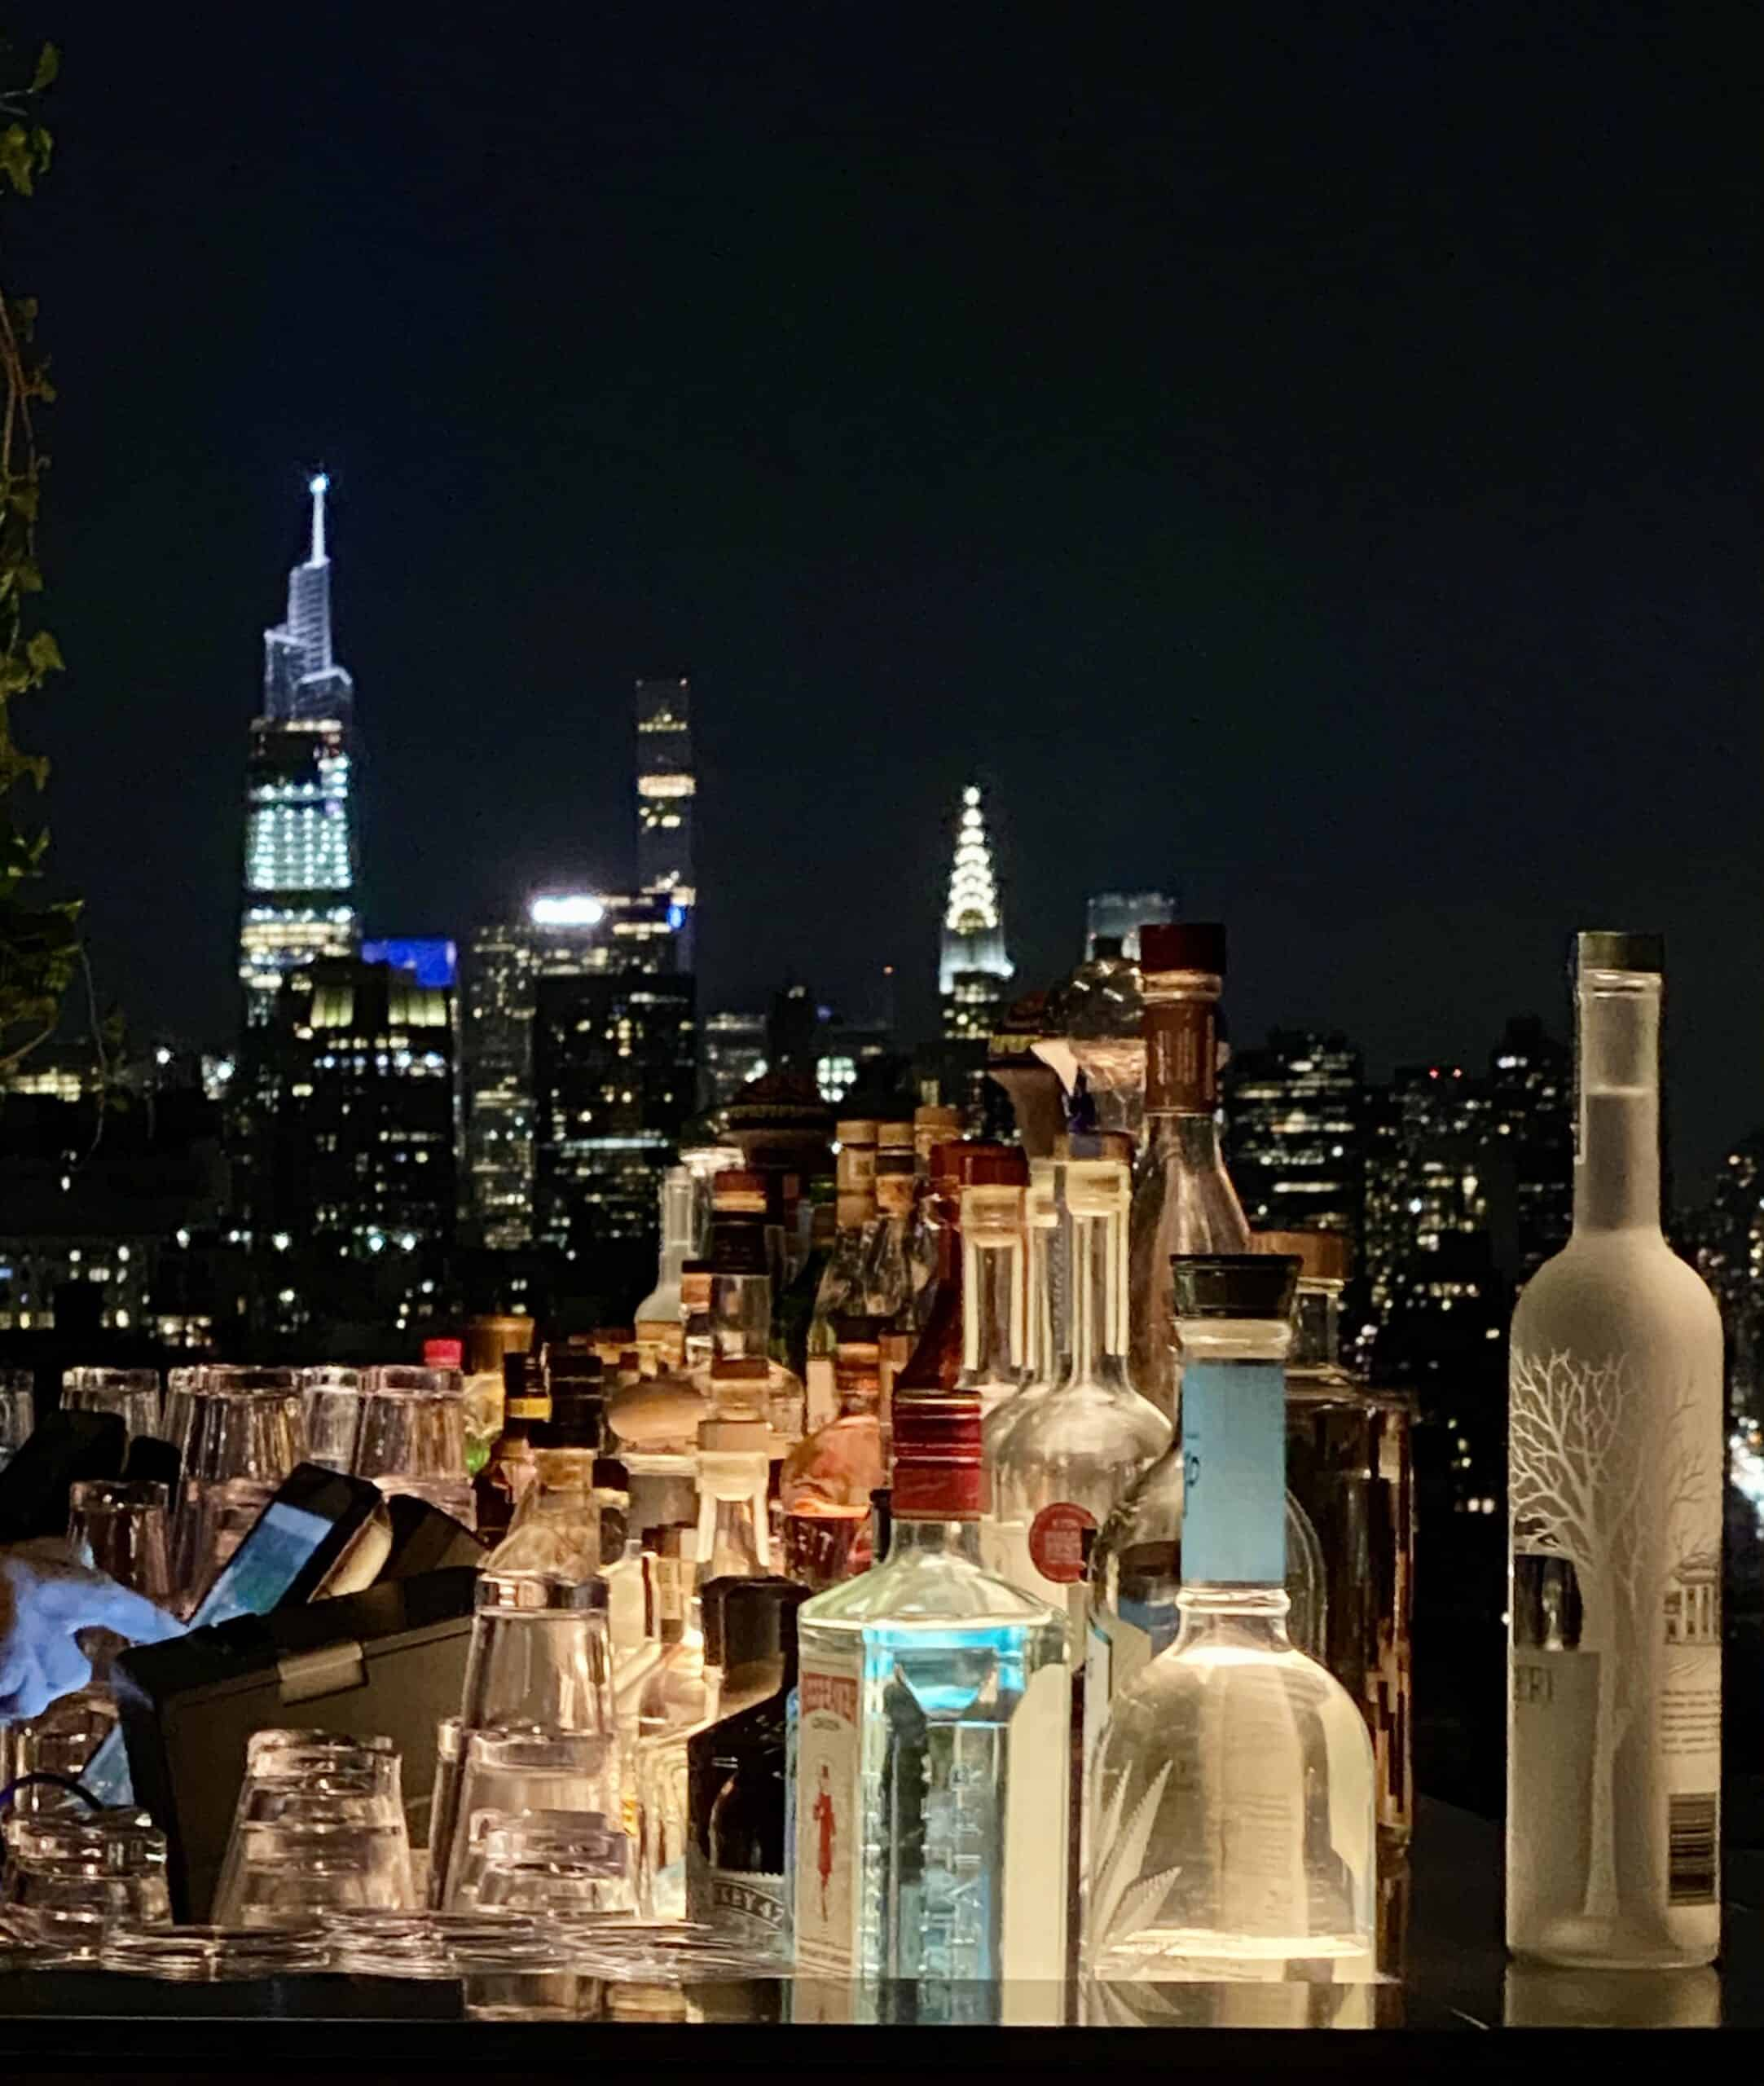 skyline of NYC and bottles